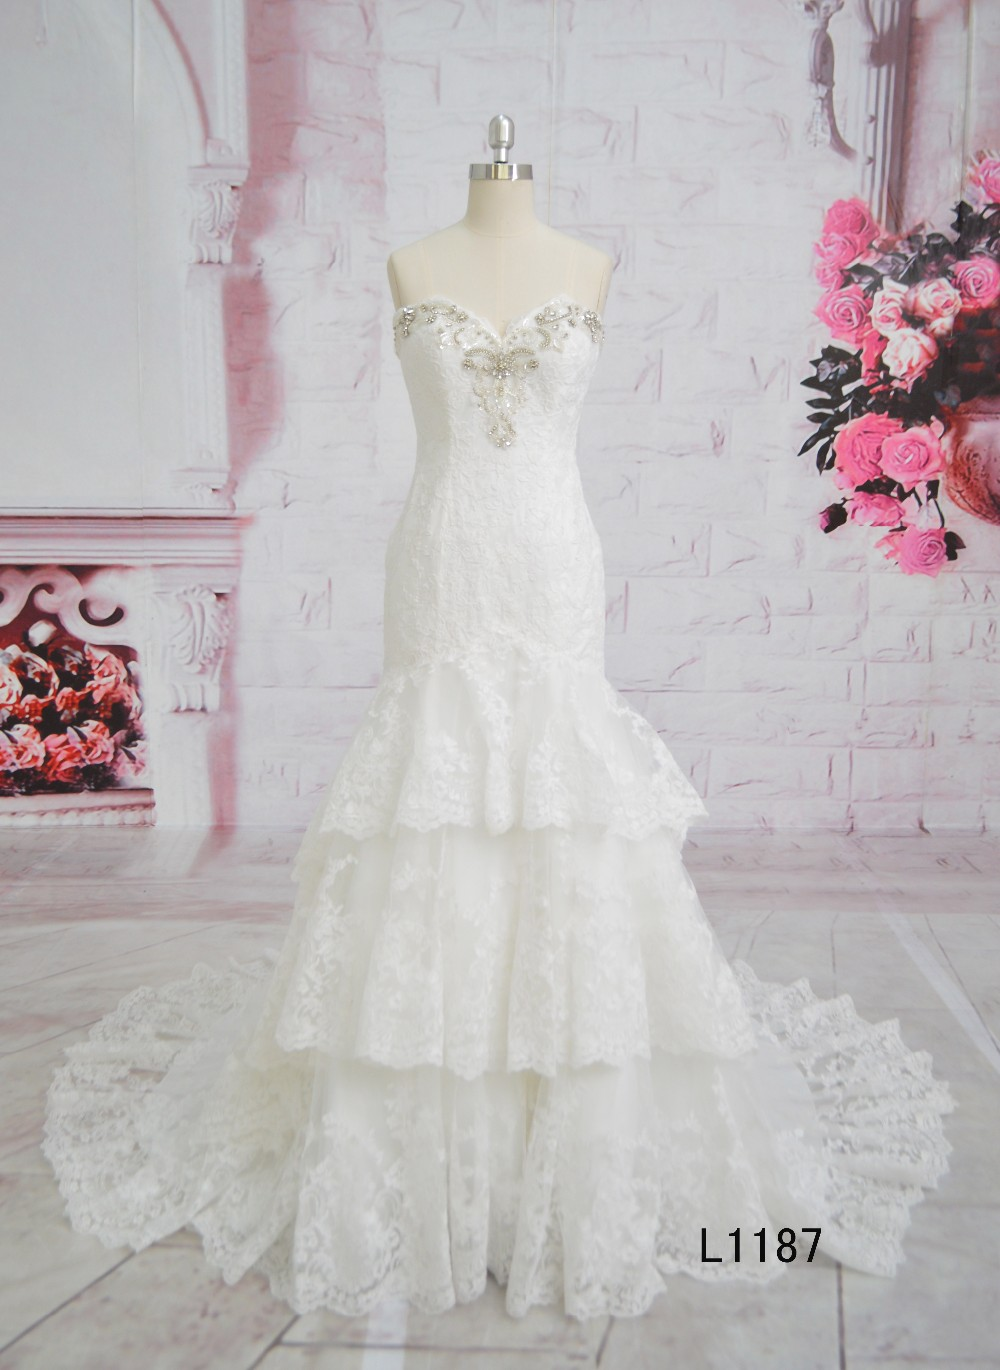 Divisoria Wedding Gowns And Bridal Dress Meirmaid Dress Wedding Gown ...